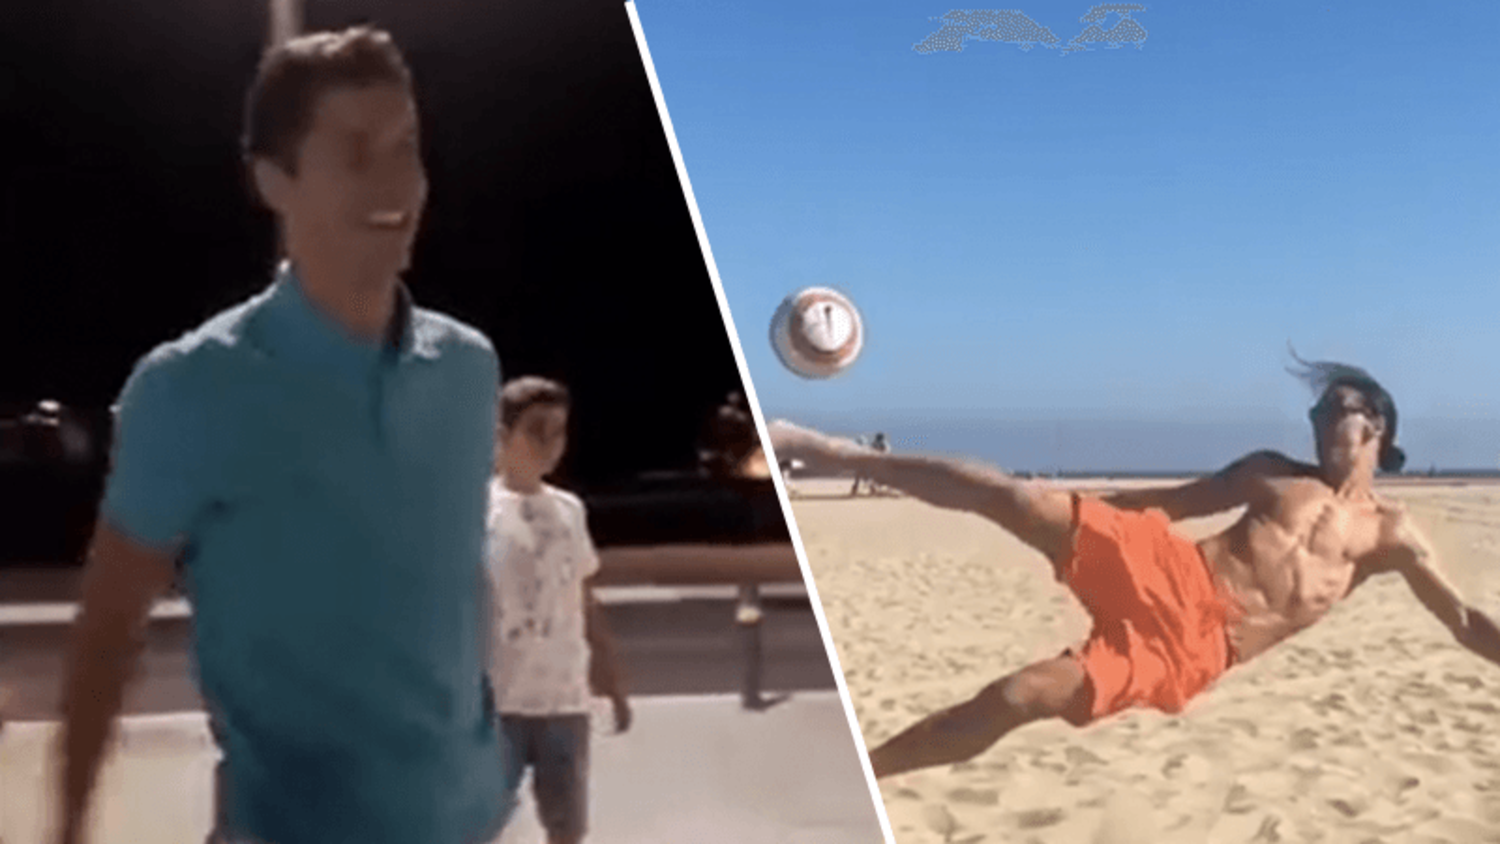 Footballers showing their skills on holiday ft. Zlatan & Lewandowski